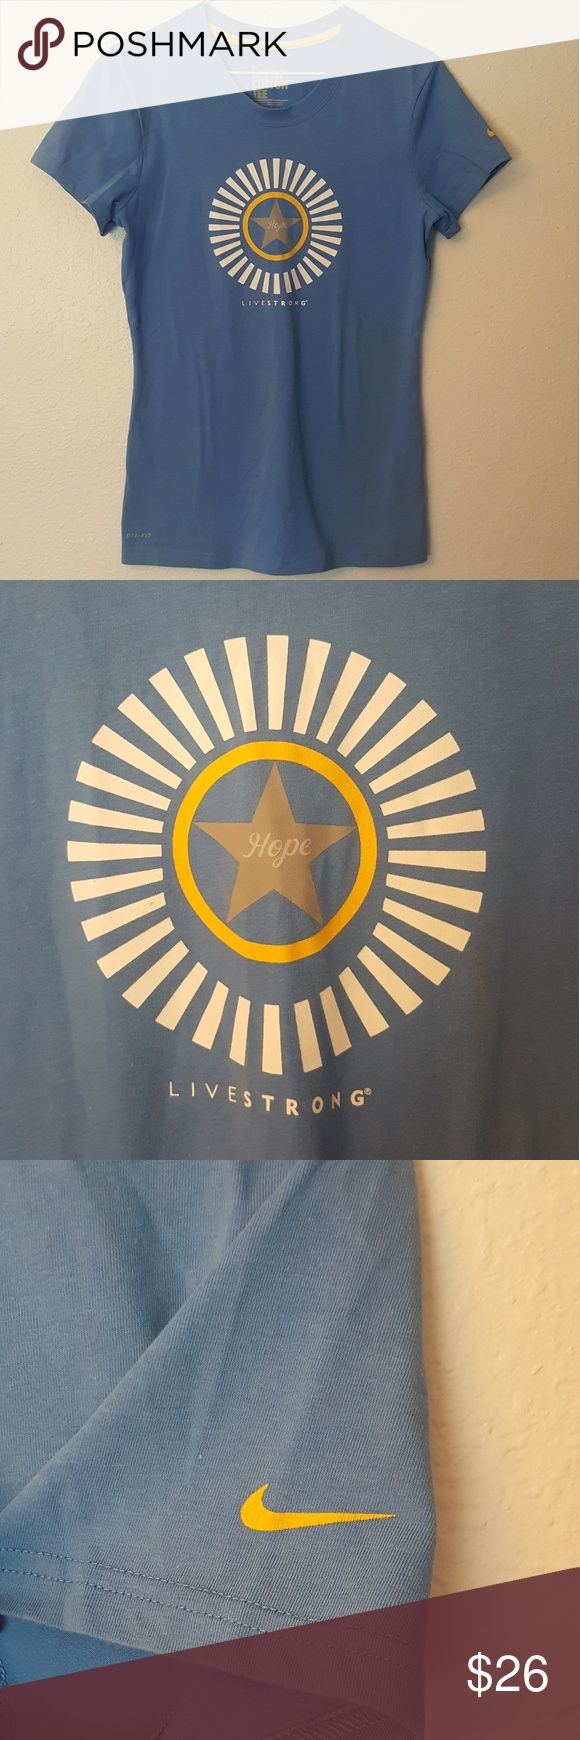 *NEW* Nike Livestrong Dry-Fit Cotton Tee Sz MEDIUM *NEW with TAGS* Nike Livestrong Dry-Fit Cotton Tee Women's Size MEDIUM Nike Tops Tees - Short Sleeve